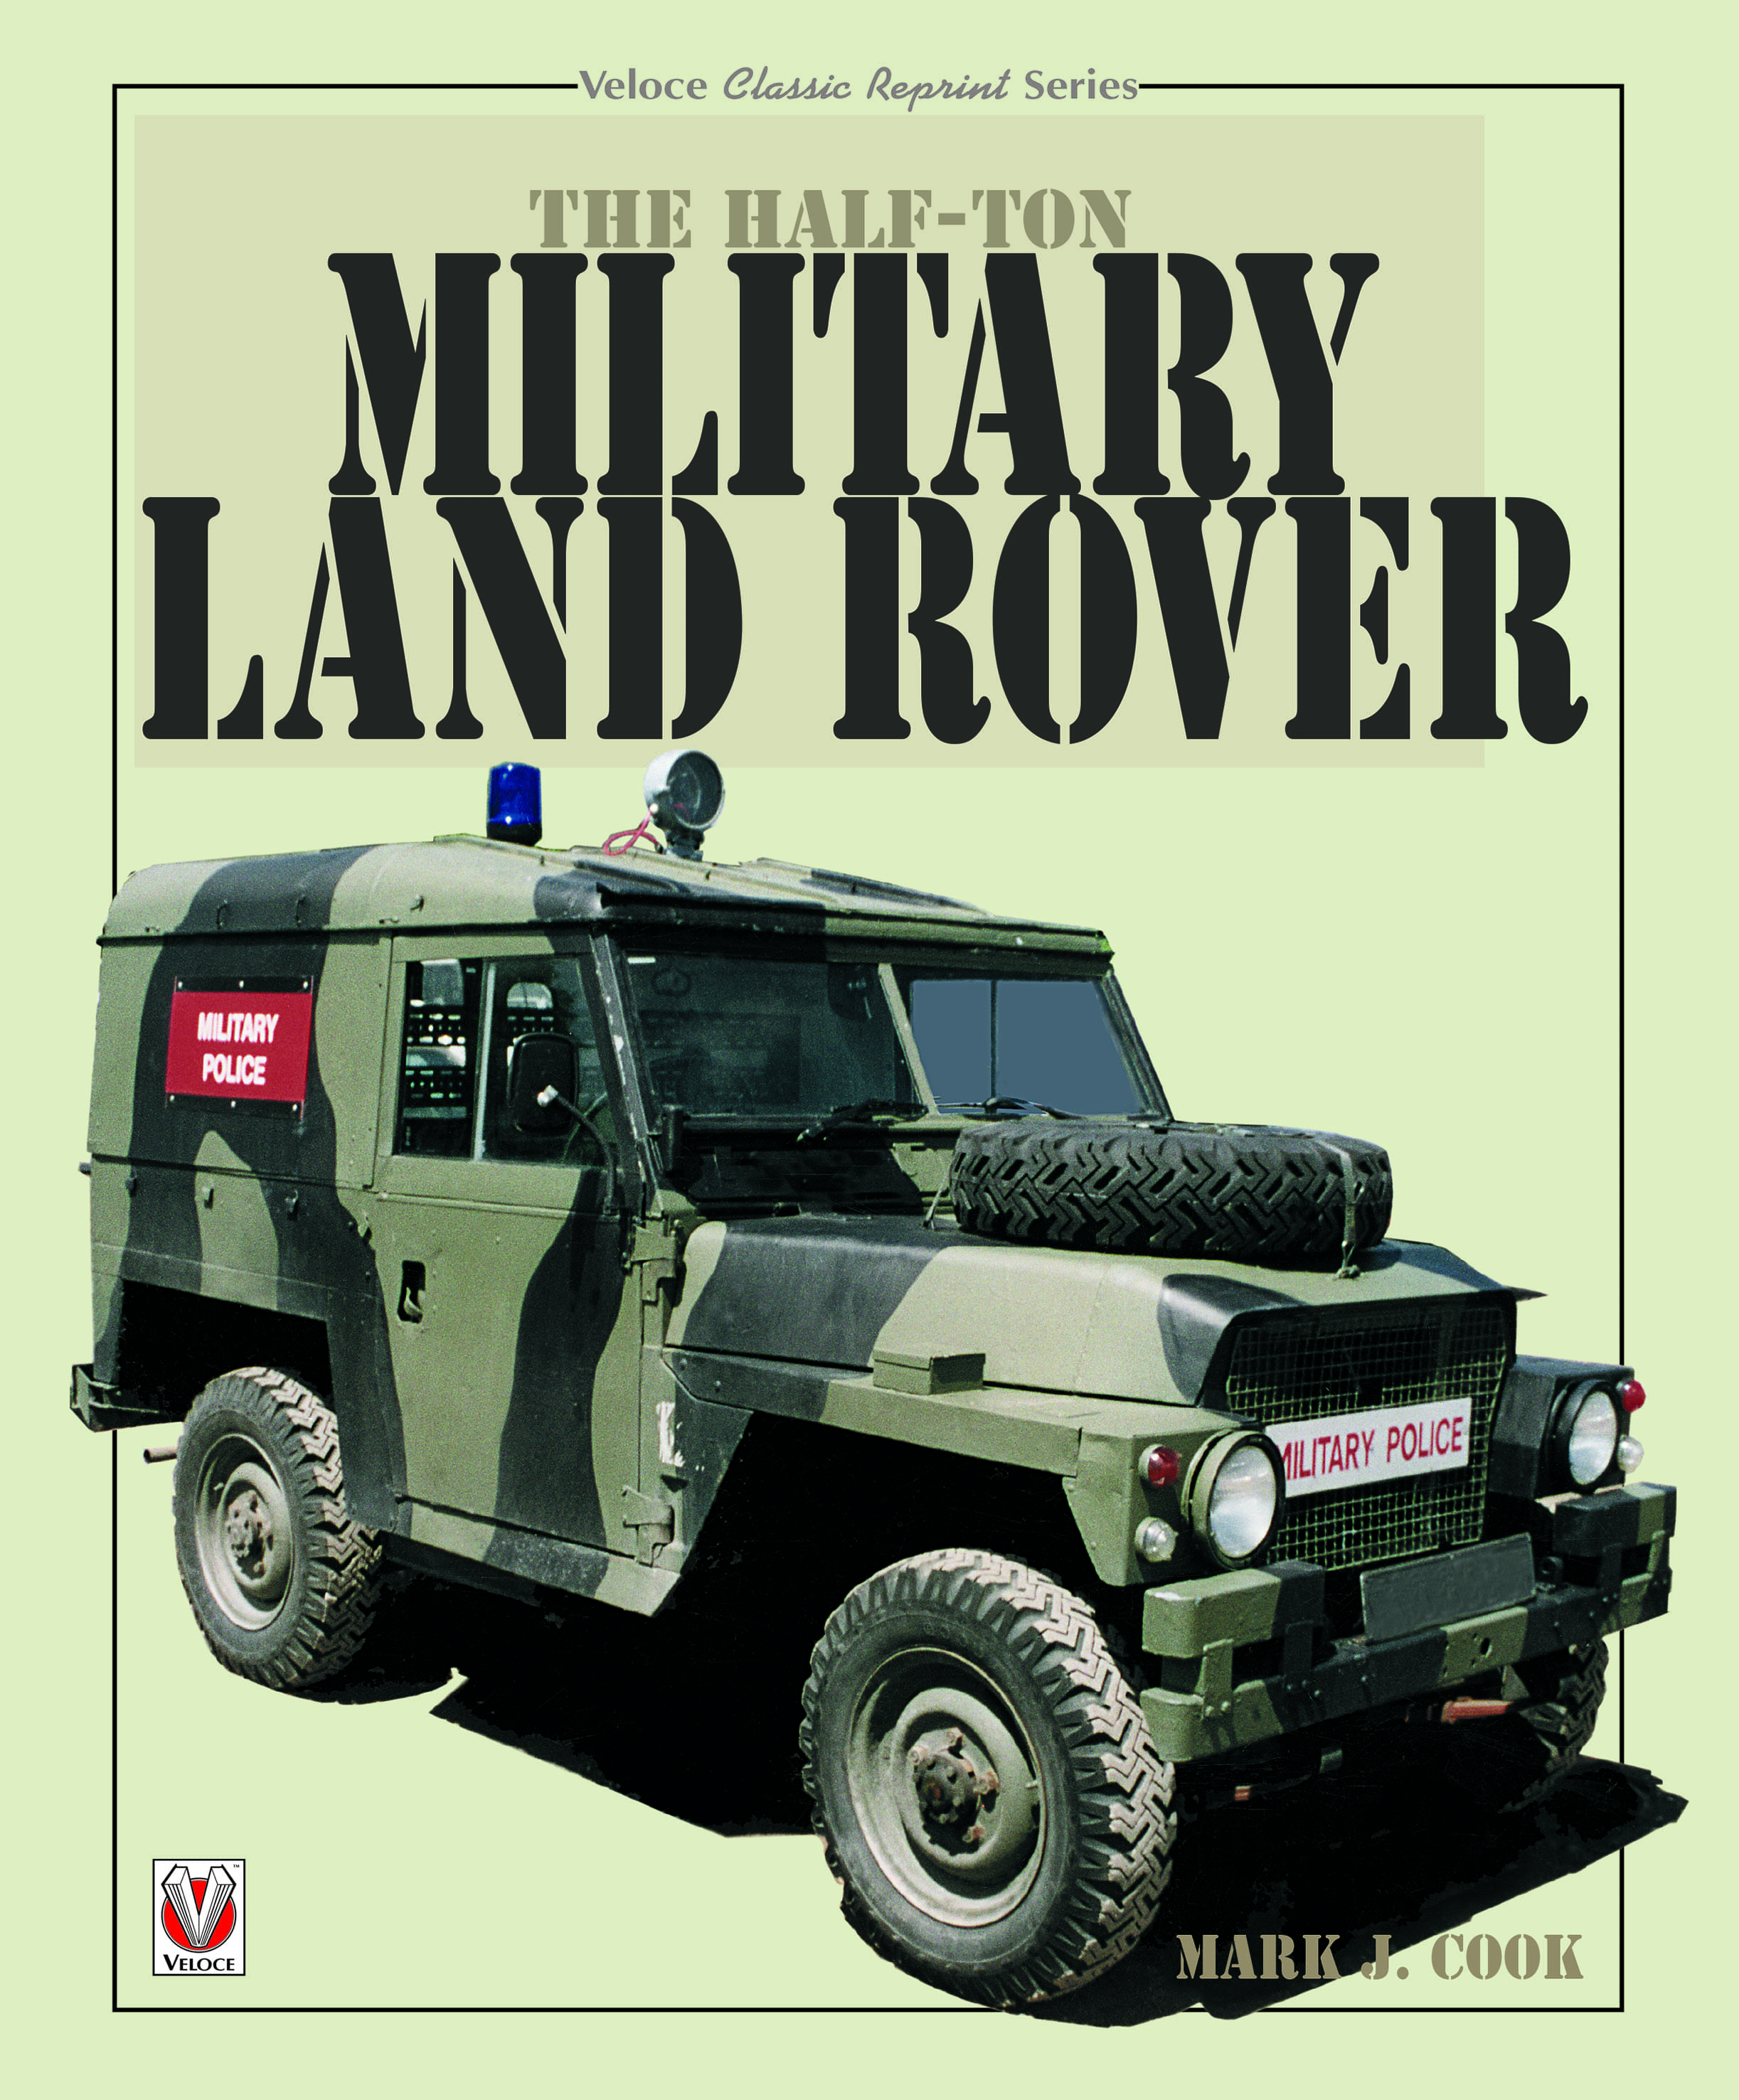 The Half-ton Military Land Rover  cover